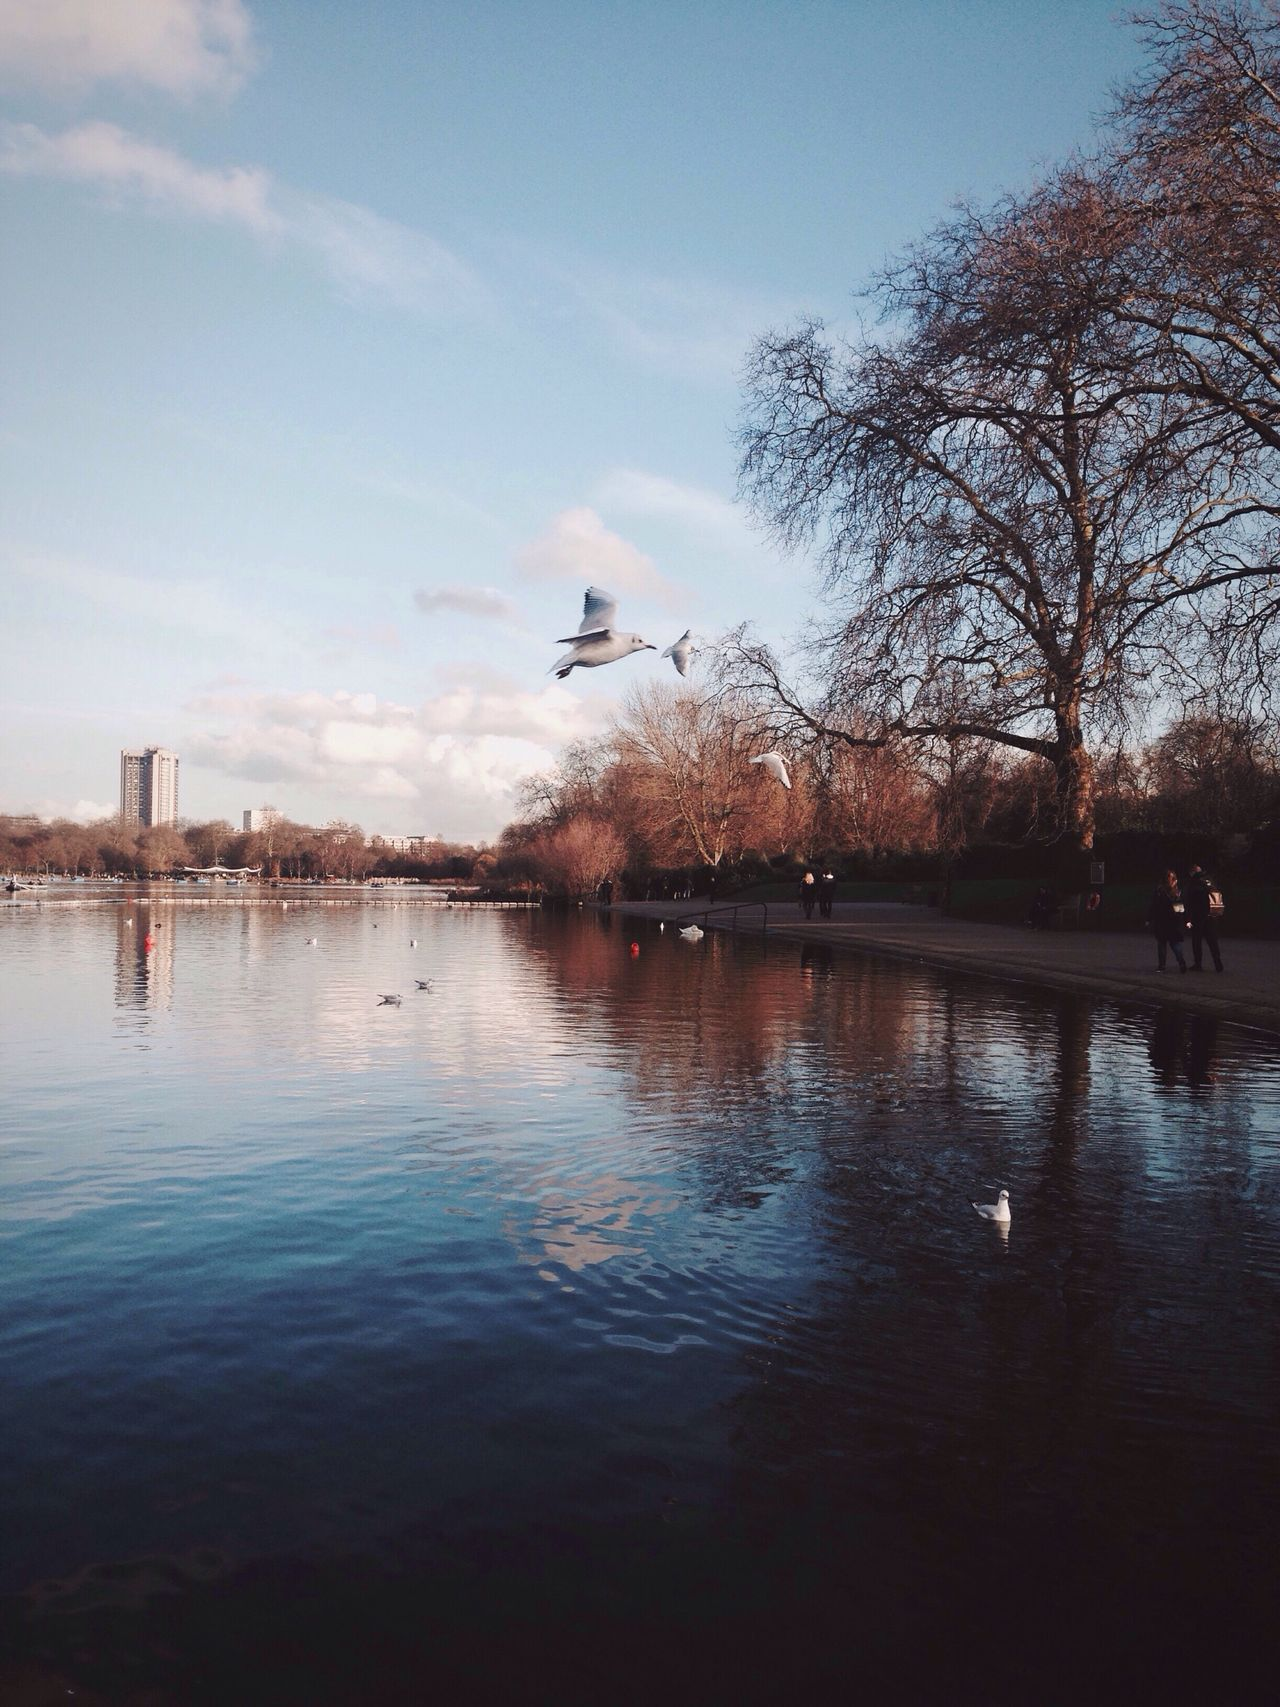 Water Bird Animal Themes Reflection Sky Animals In The Wild Flying Lake Nature Tree Built Structure Outdoors Waterfront Building Exterior Beauty In Nature No People Architecture Day City Cloud - Sky Hyde Park Nature Park Birds EyeEm LOST IN London